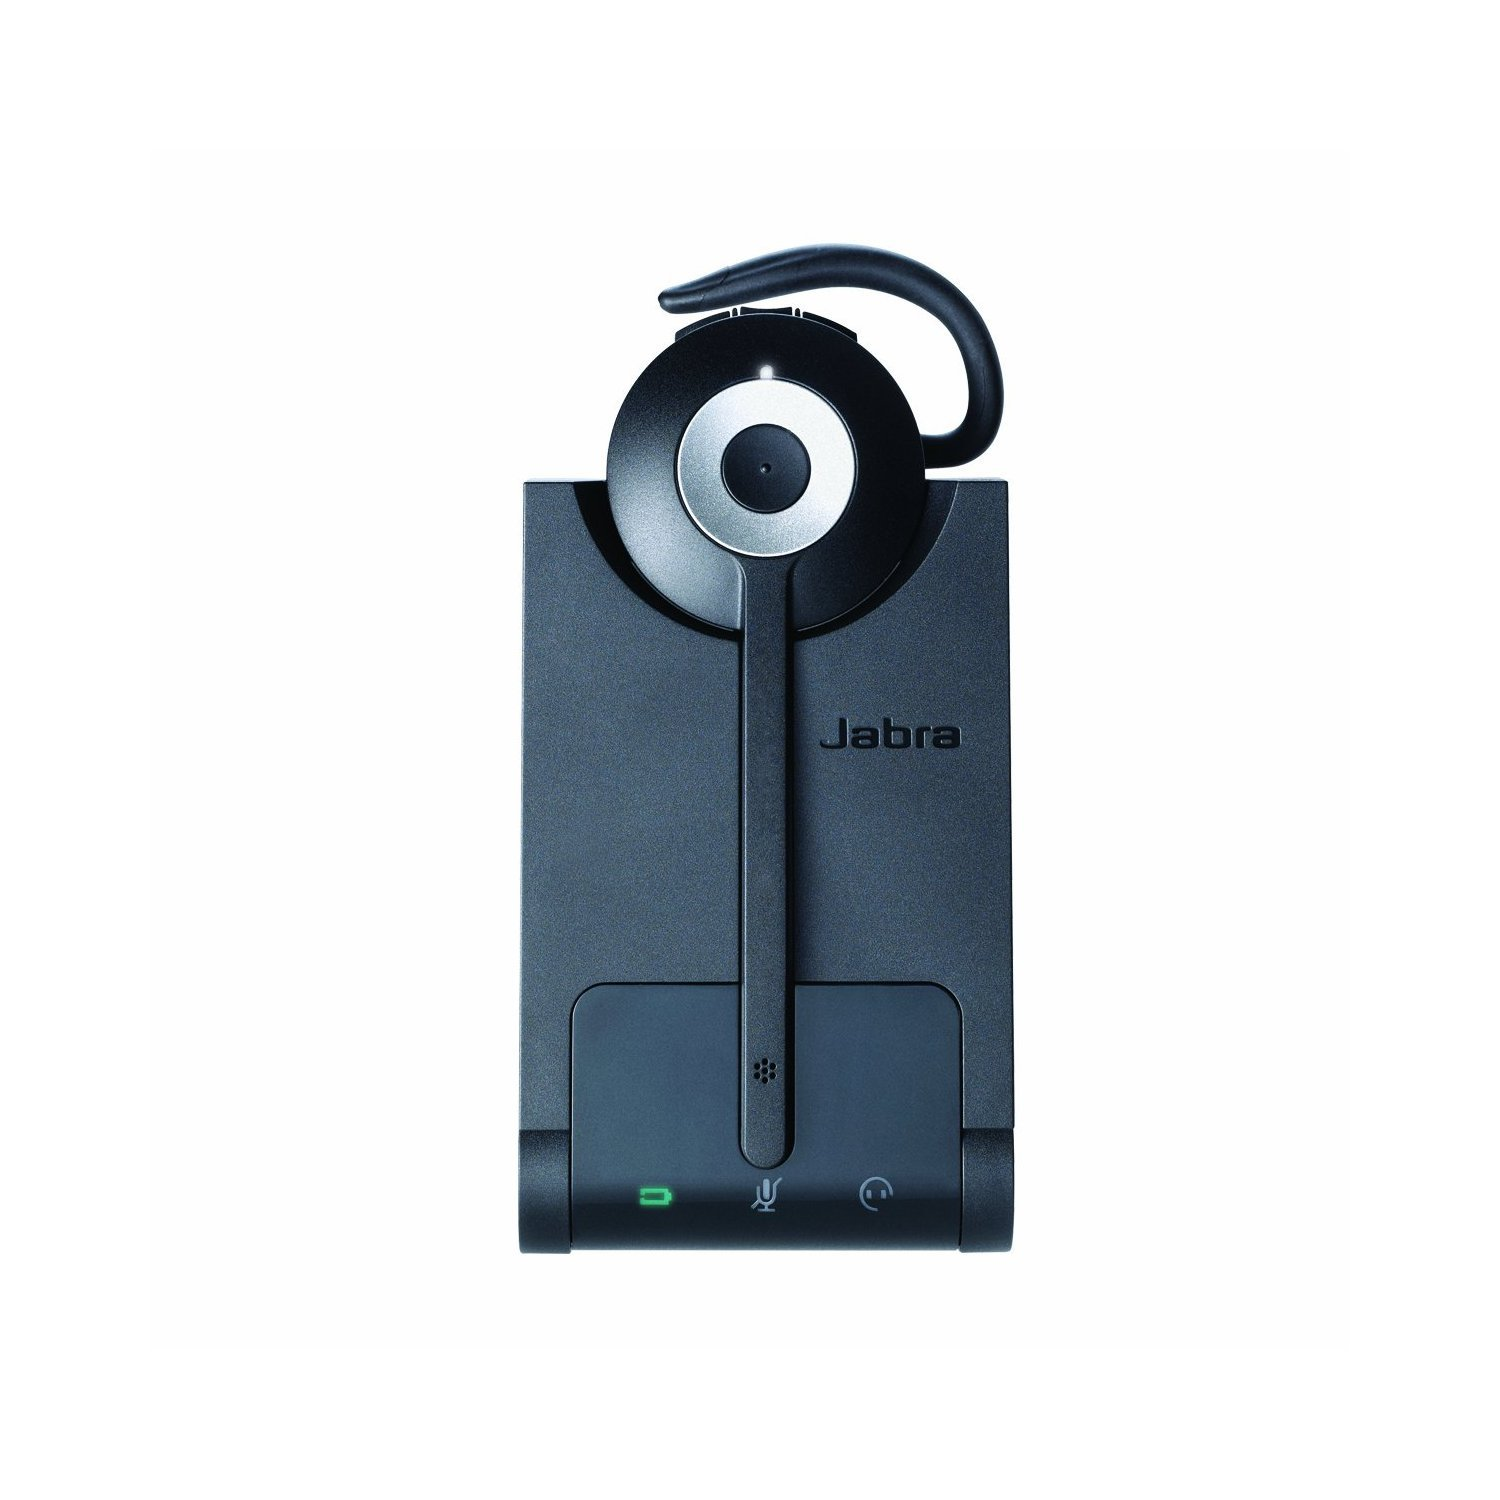 Jabra Pro 930 UC Mono Wireless Headset for Softphone (USB Only) Gn Us 930-65-509-105 MP3 & Media Player Accessories